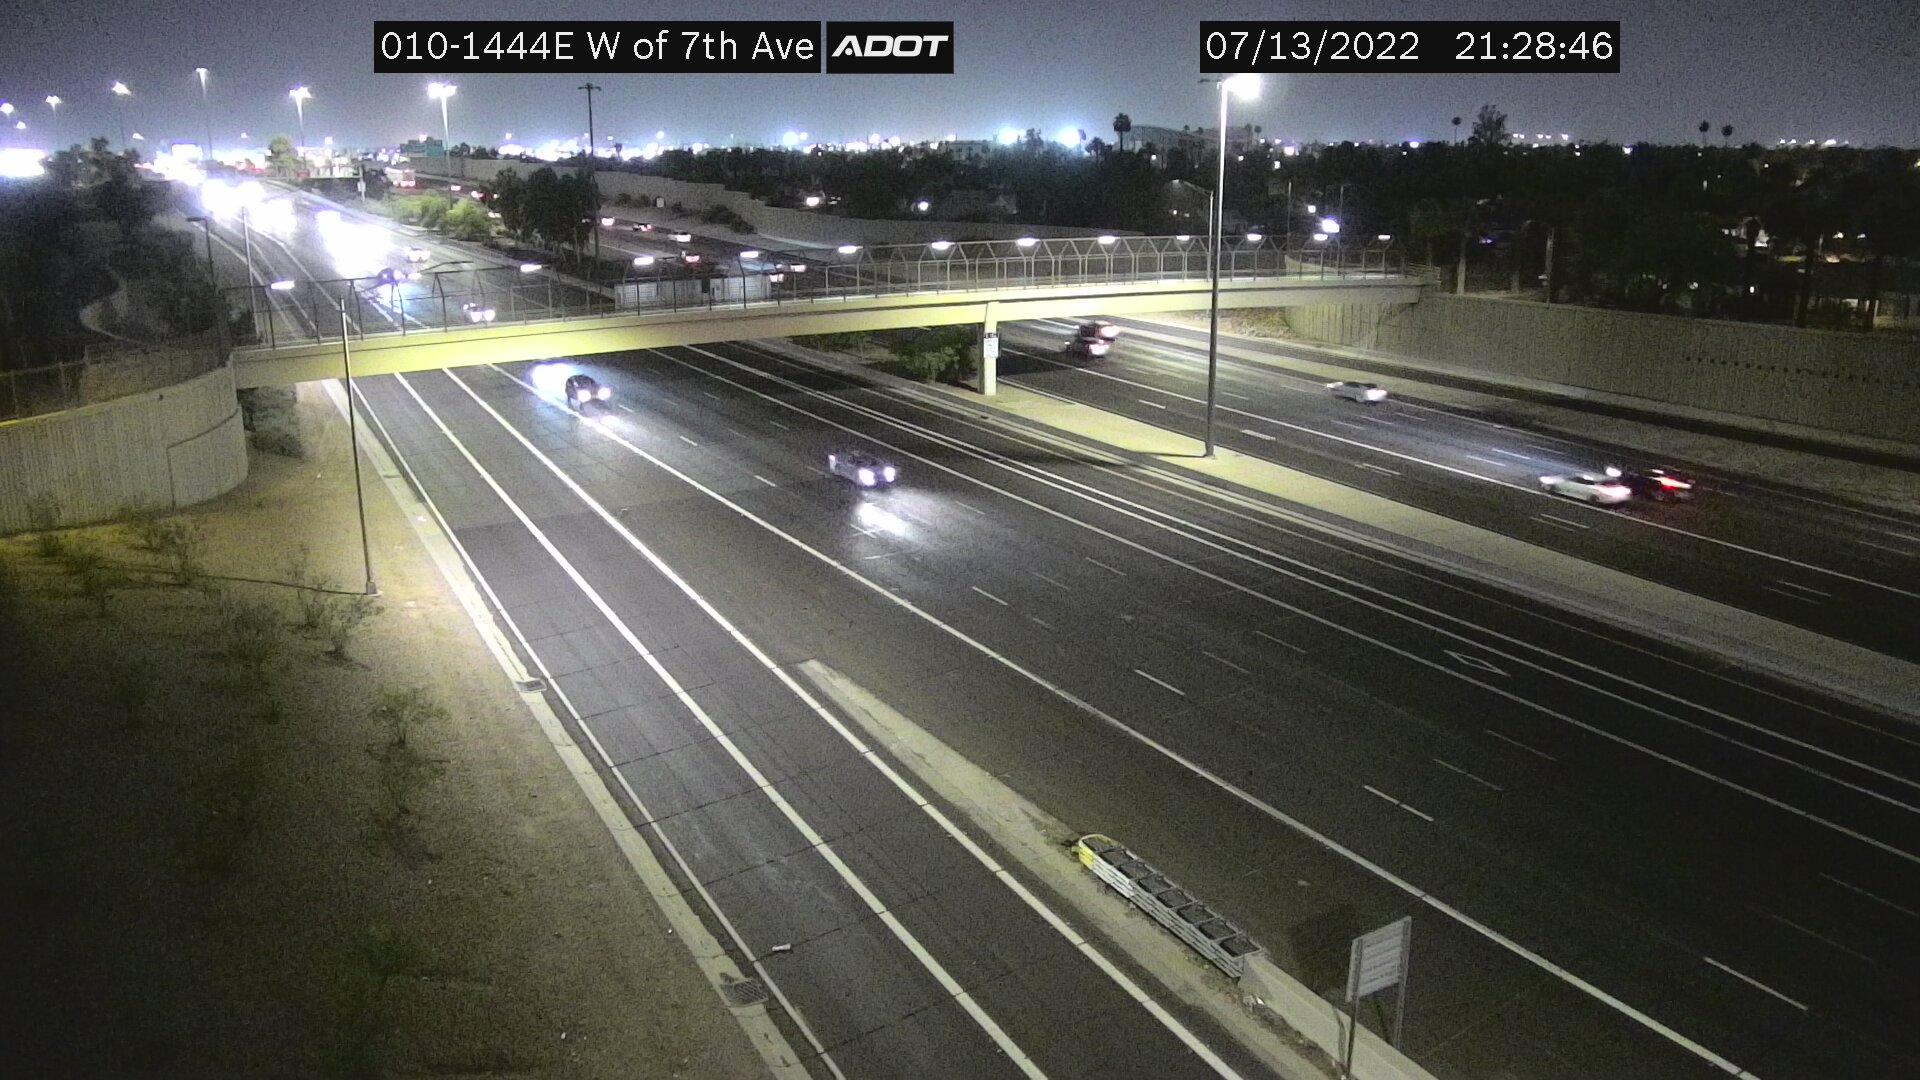 I-10 West of 7th Avenue